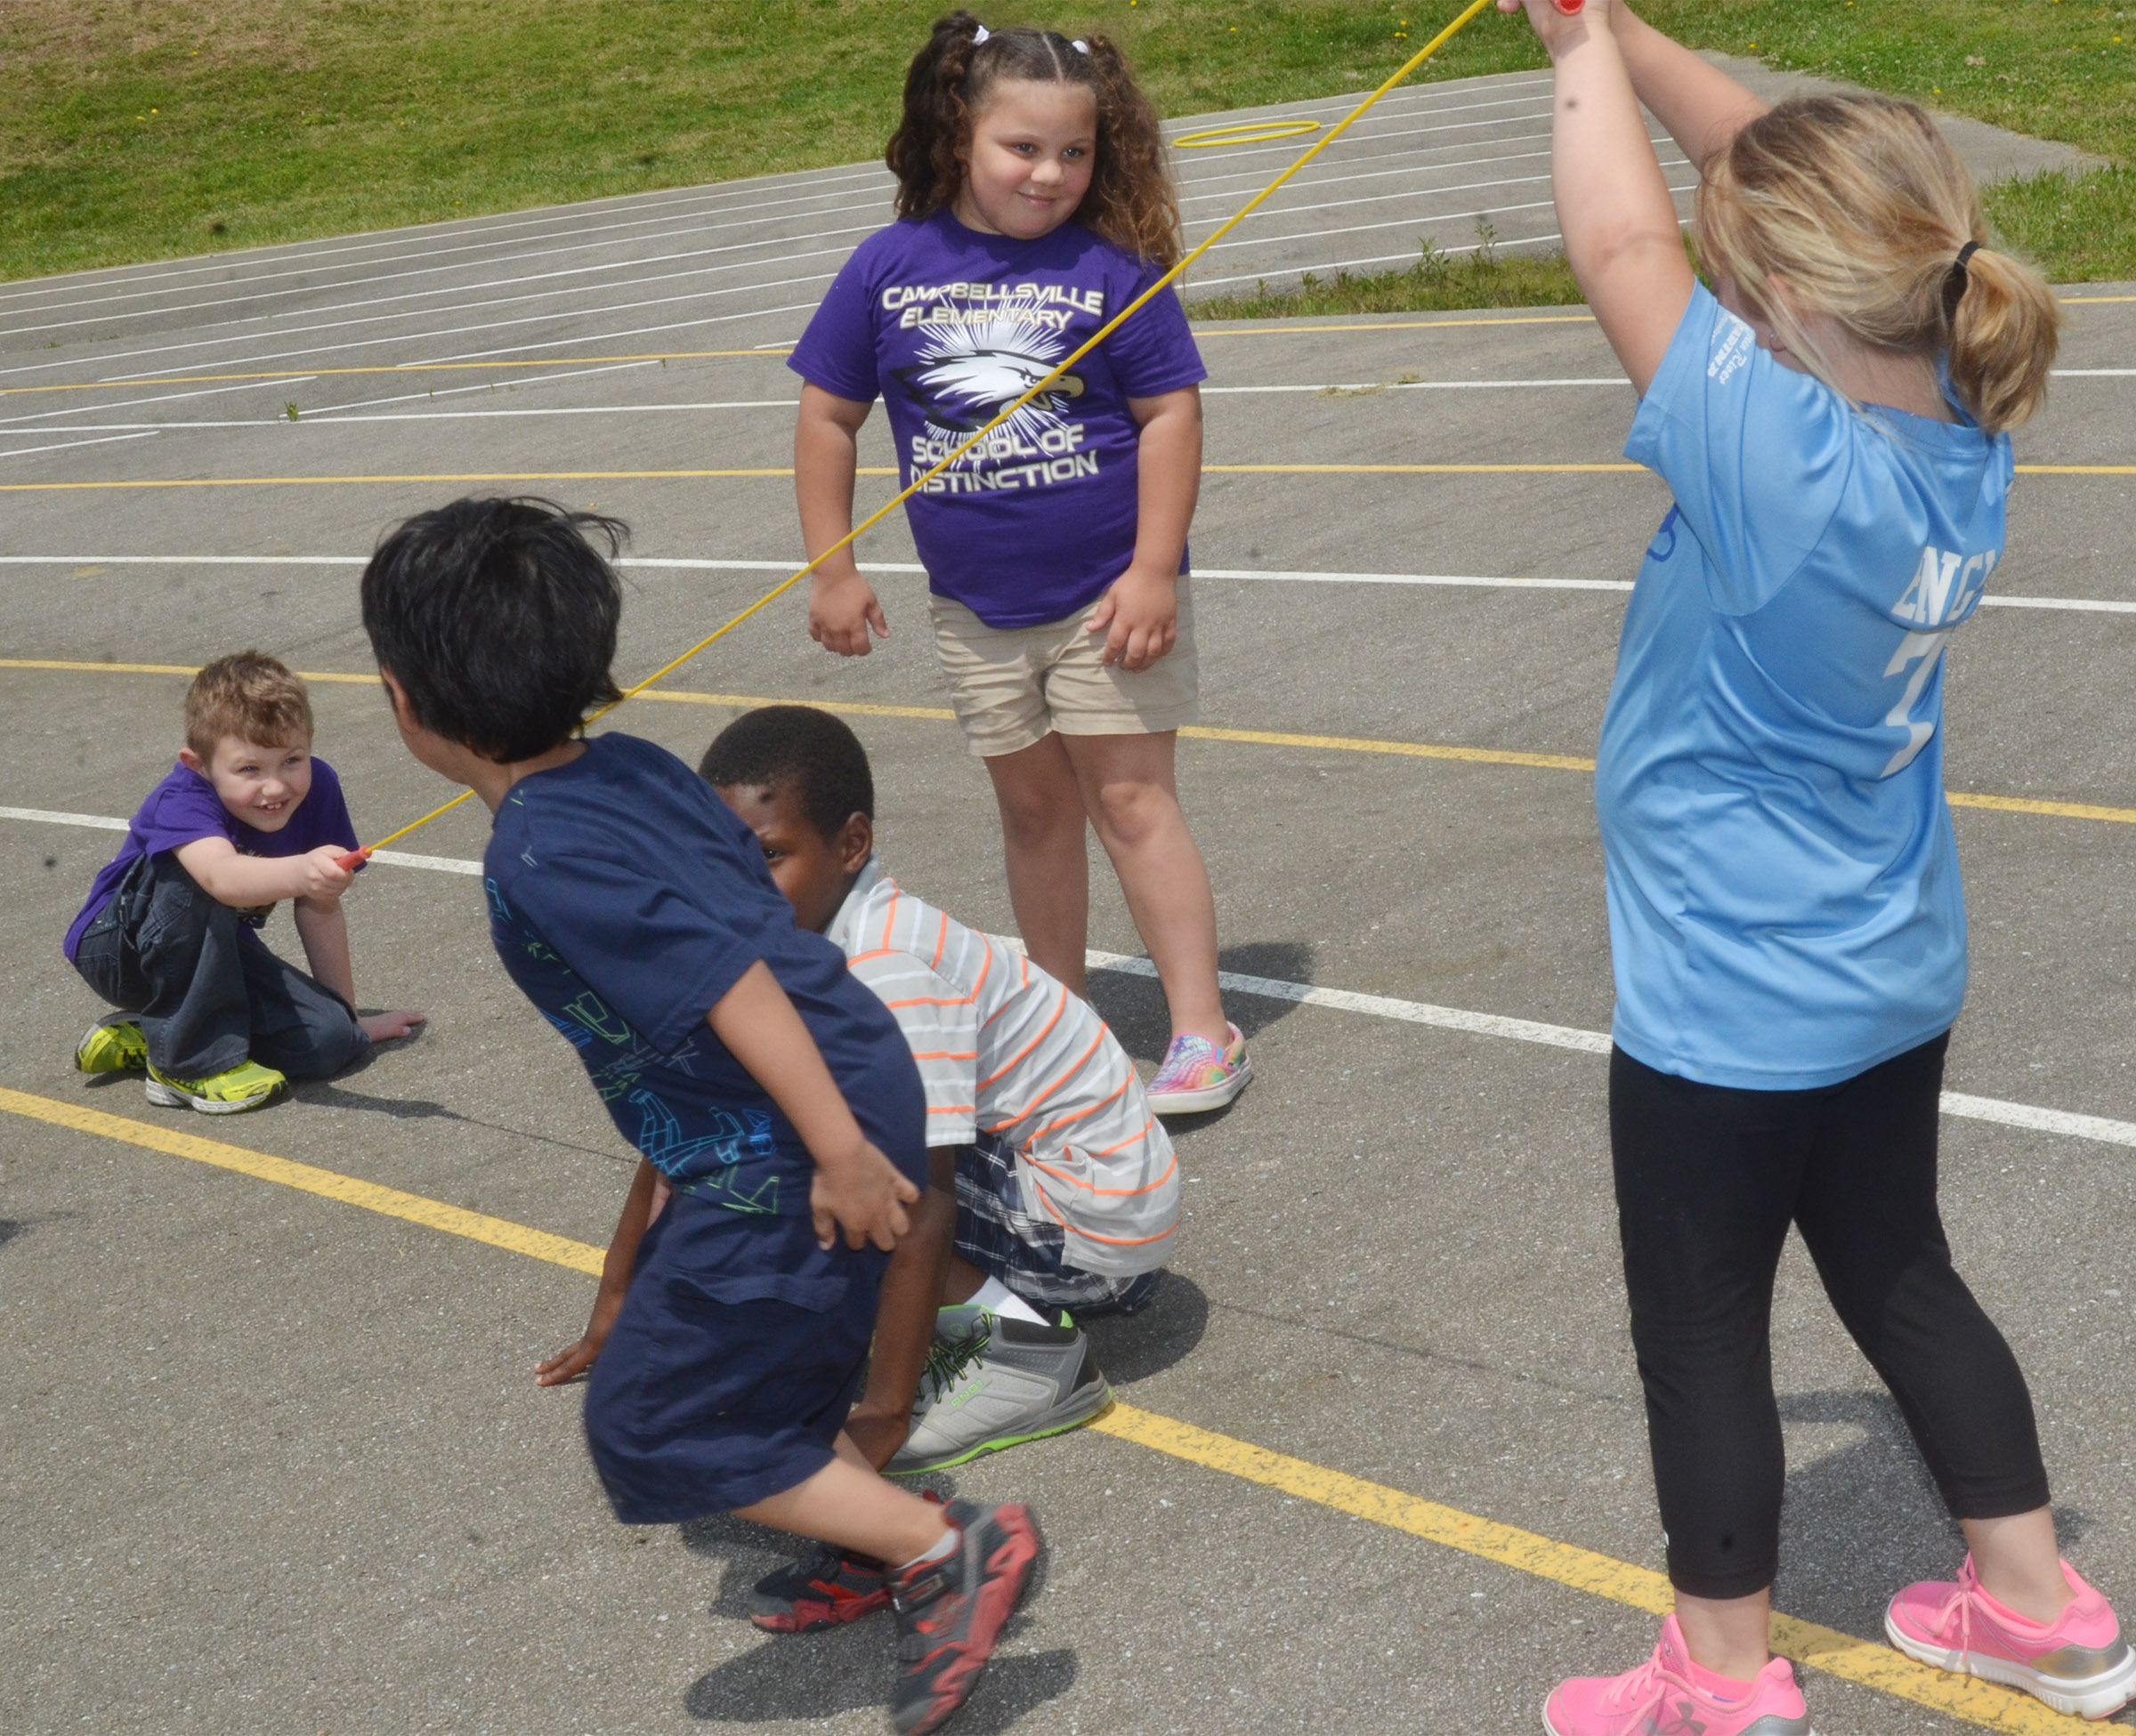 CES first-graders play jump rope together.